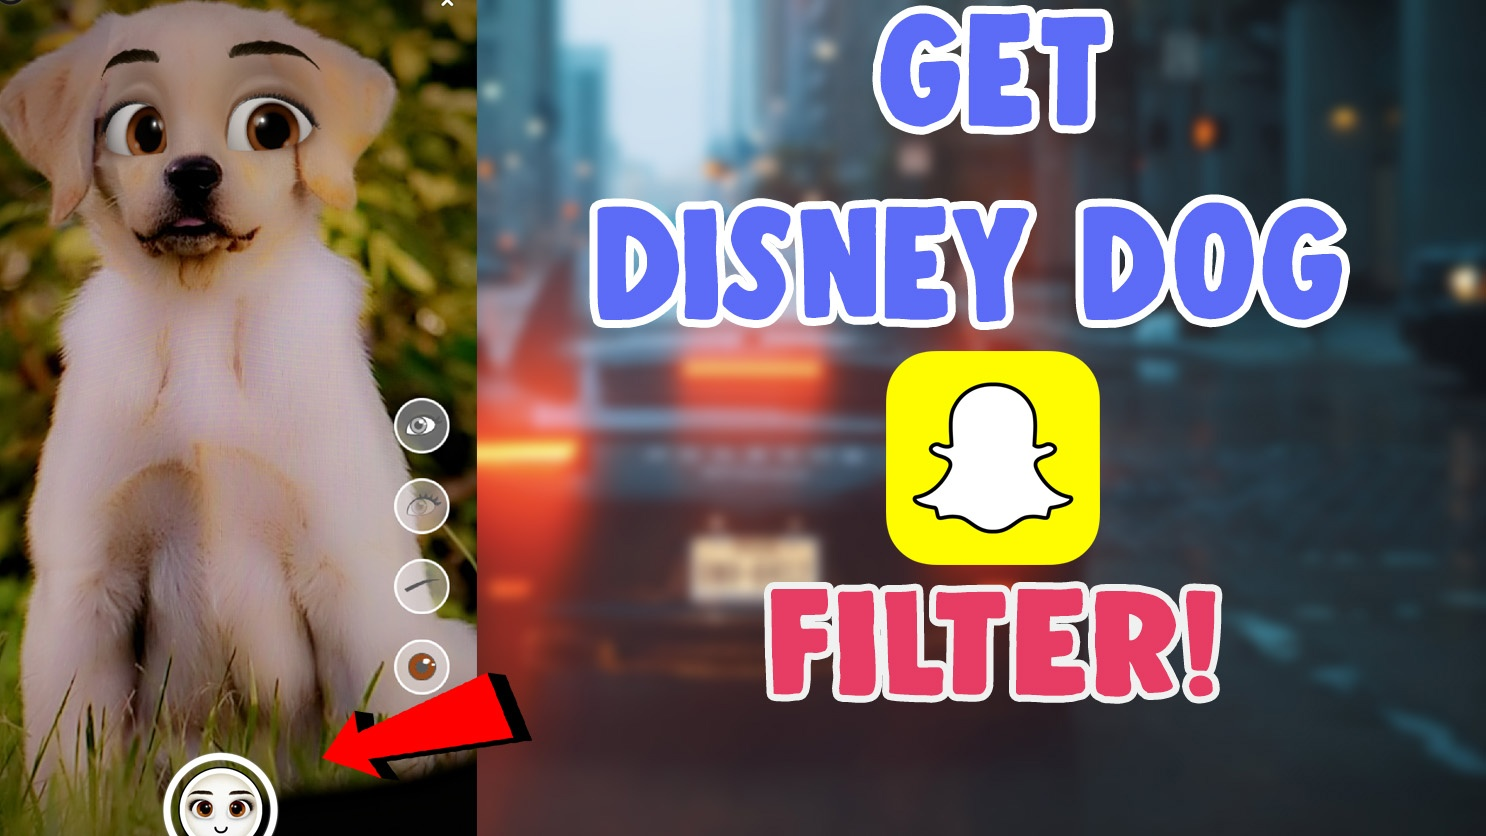 How To Get Disney Dog Filter On Snapchat And Instagram Disneyfies Snapchat Salu Network